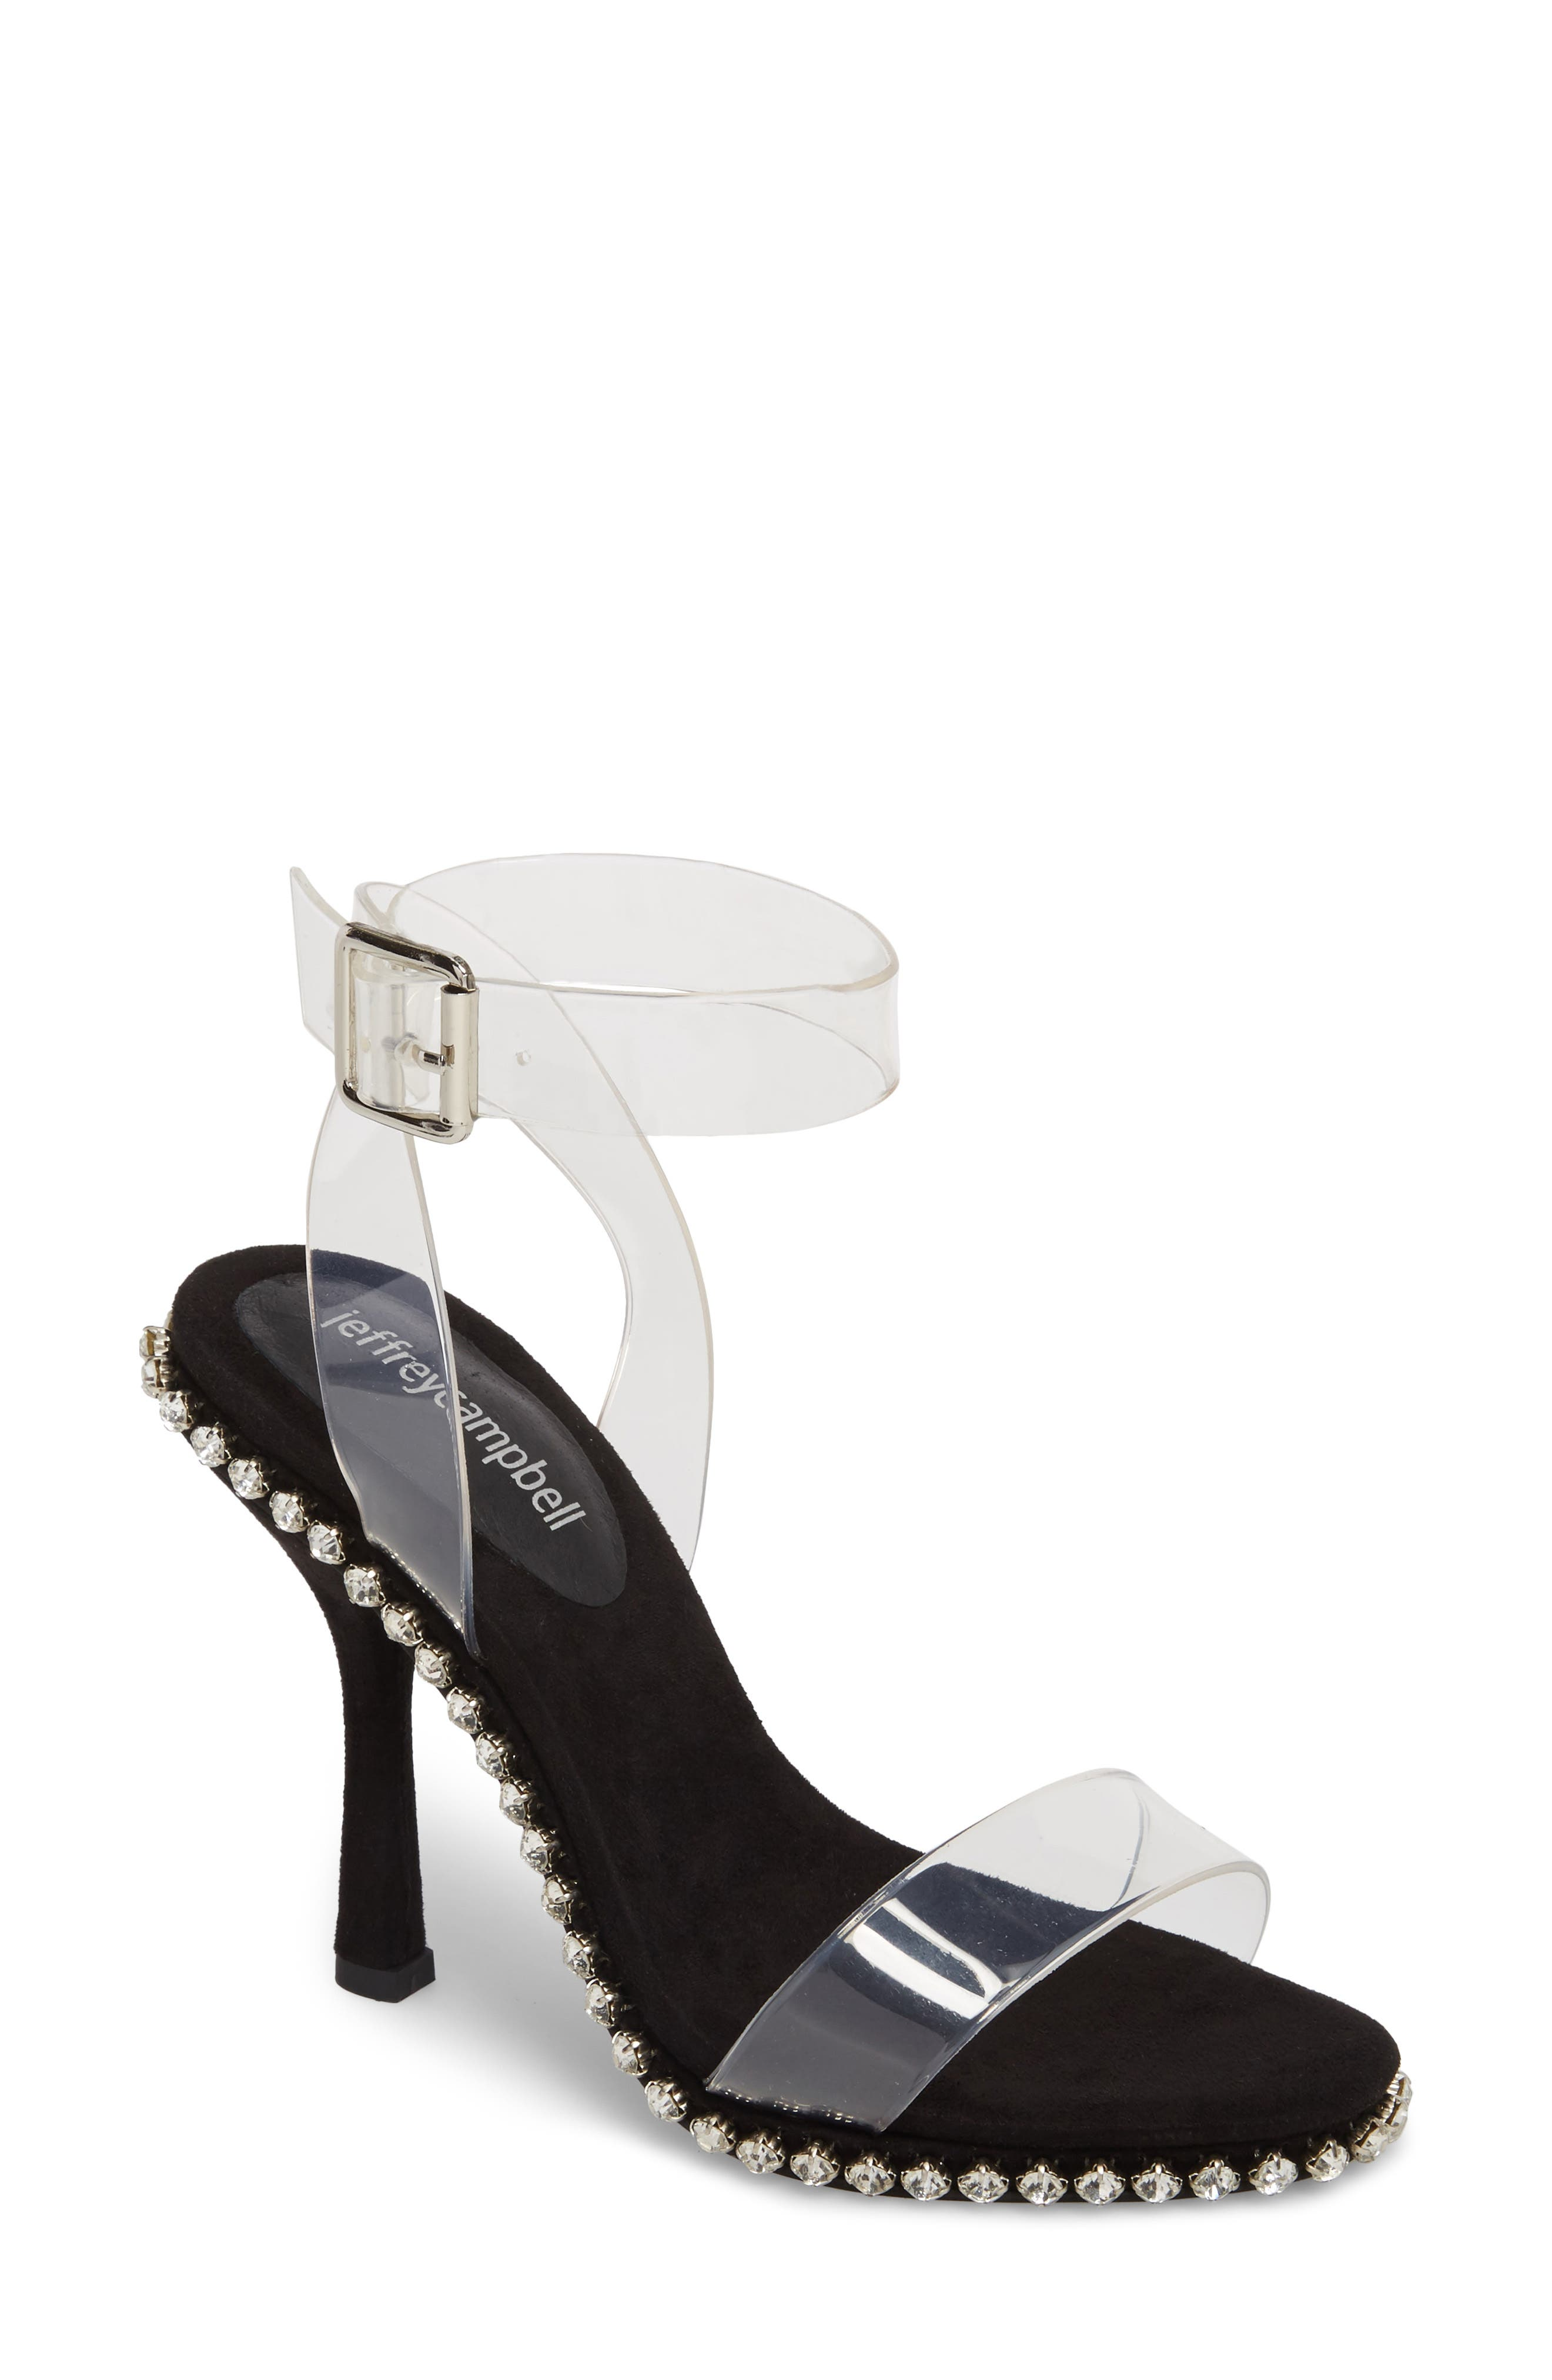 Charmed Sandal,                         Main,                         color, Black Suede-Clear